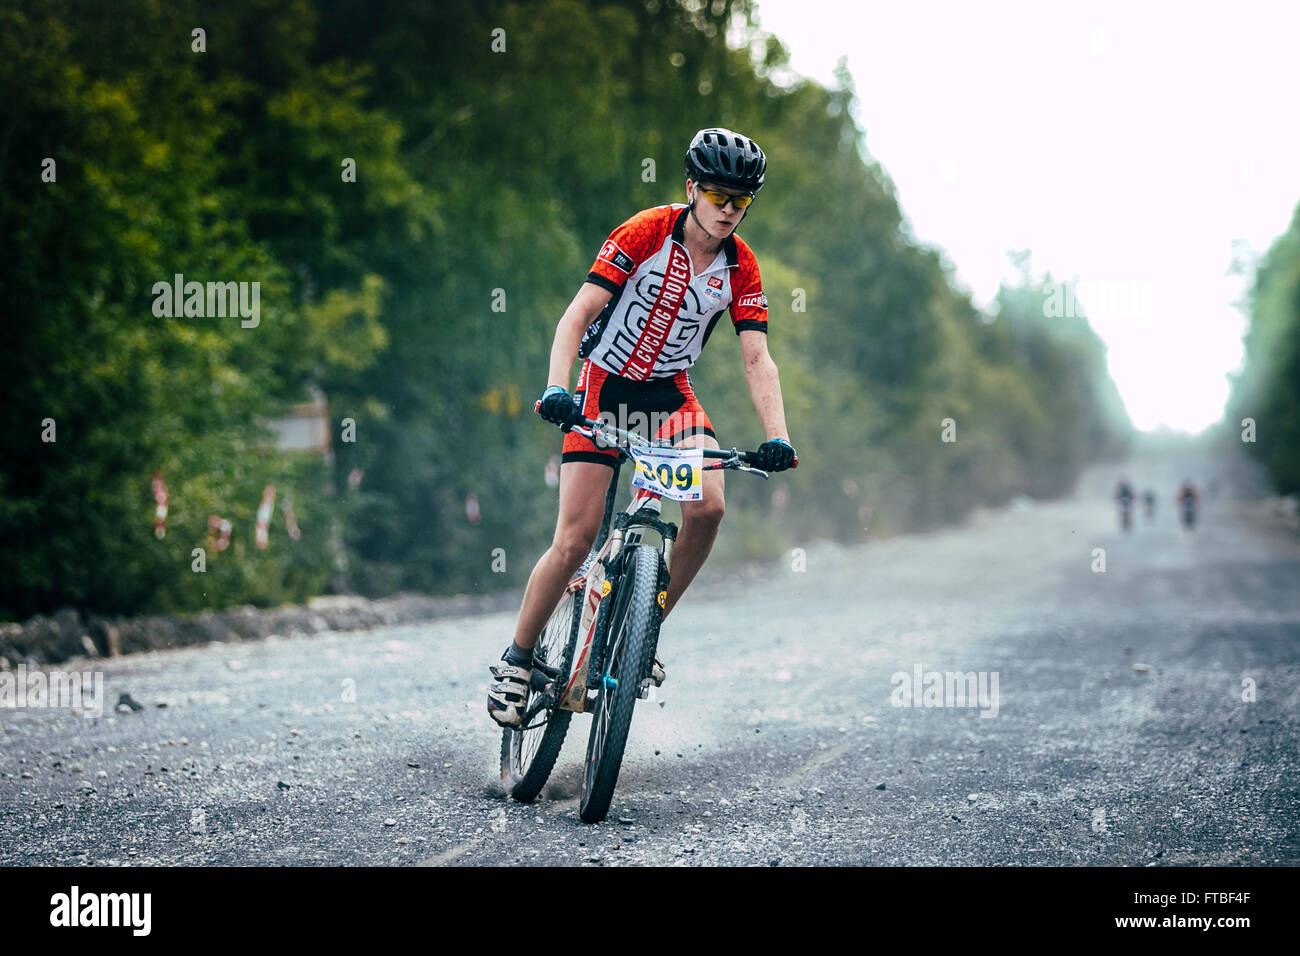 V.Ufaley, Russia - August 09, 2015: braking mountain bikers of the gravel road during race 'Big stone' - Stock Image